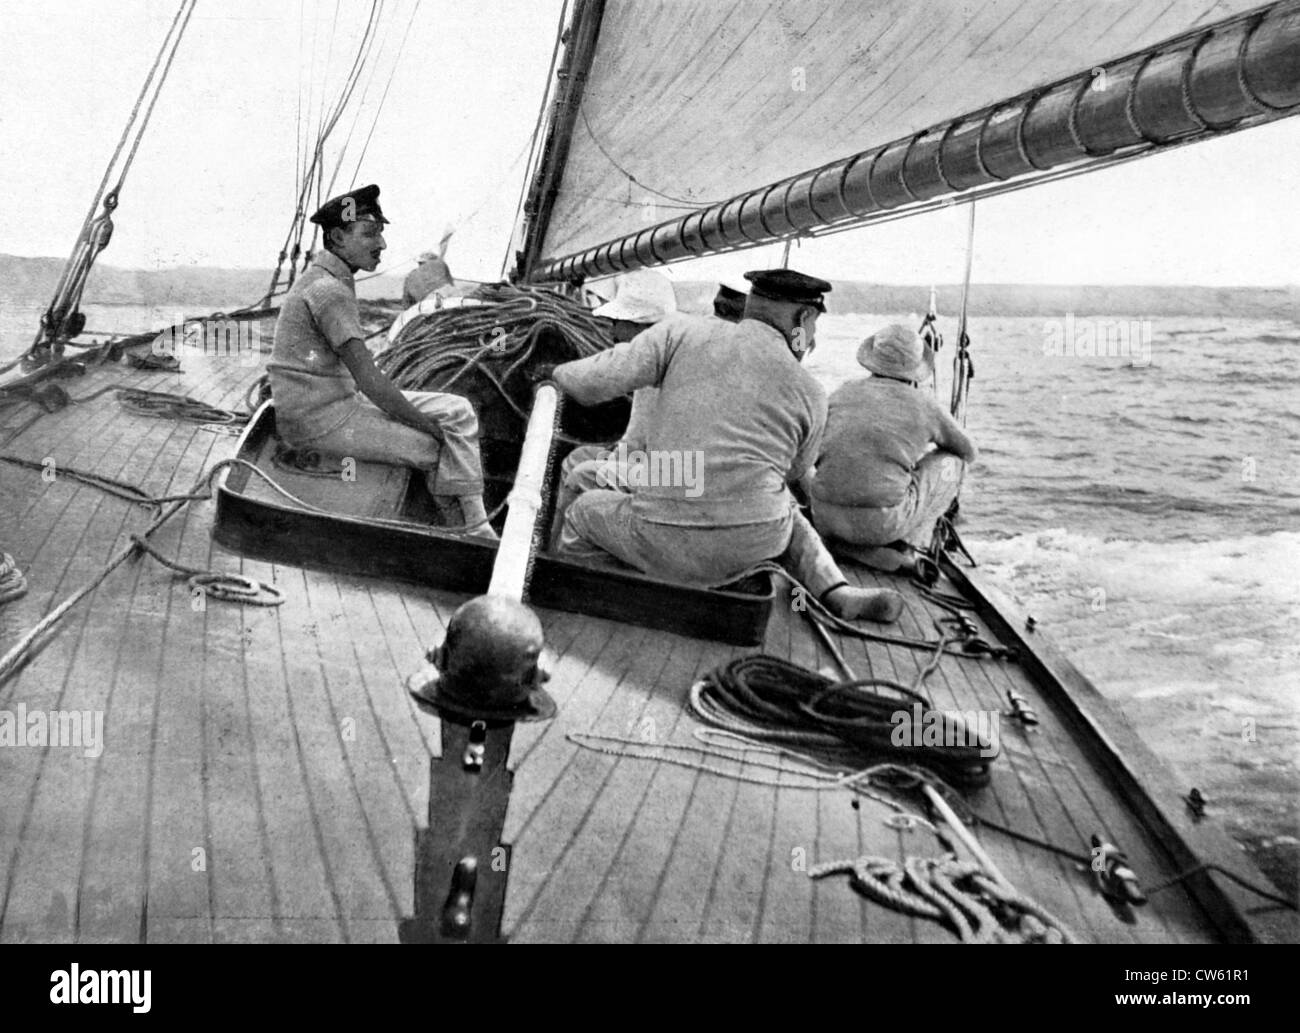 King Alfonso XIII of Spain aboard his yacht during regattas (1910) - Stock Image